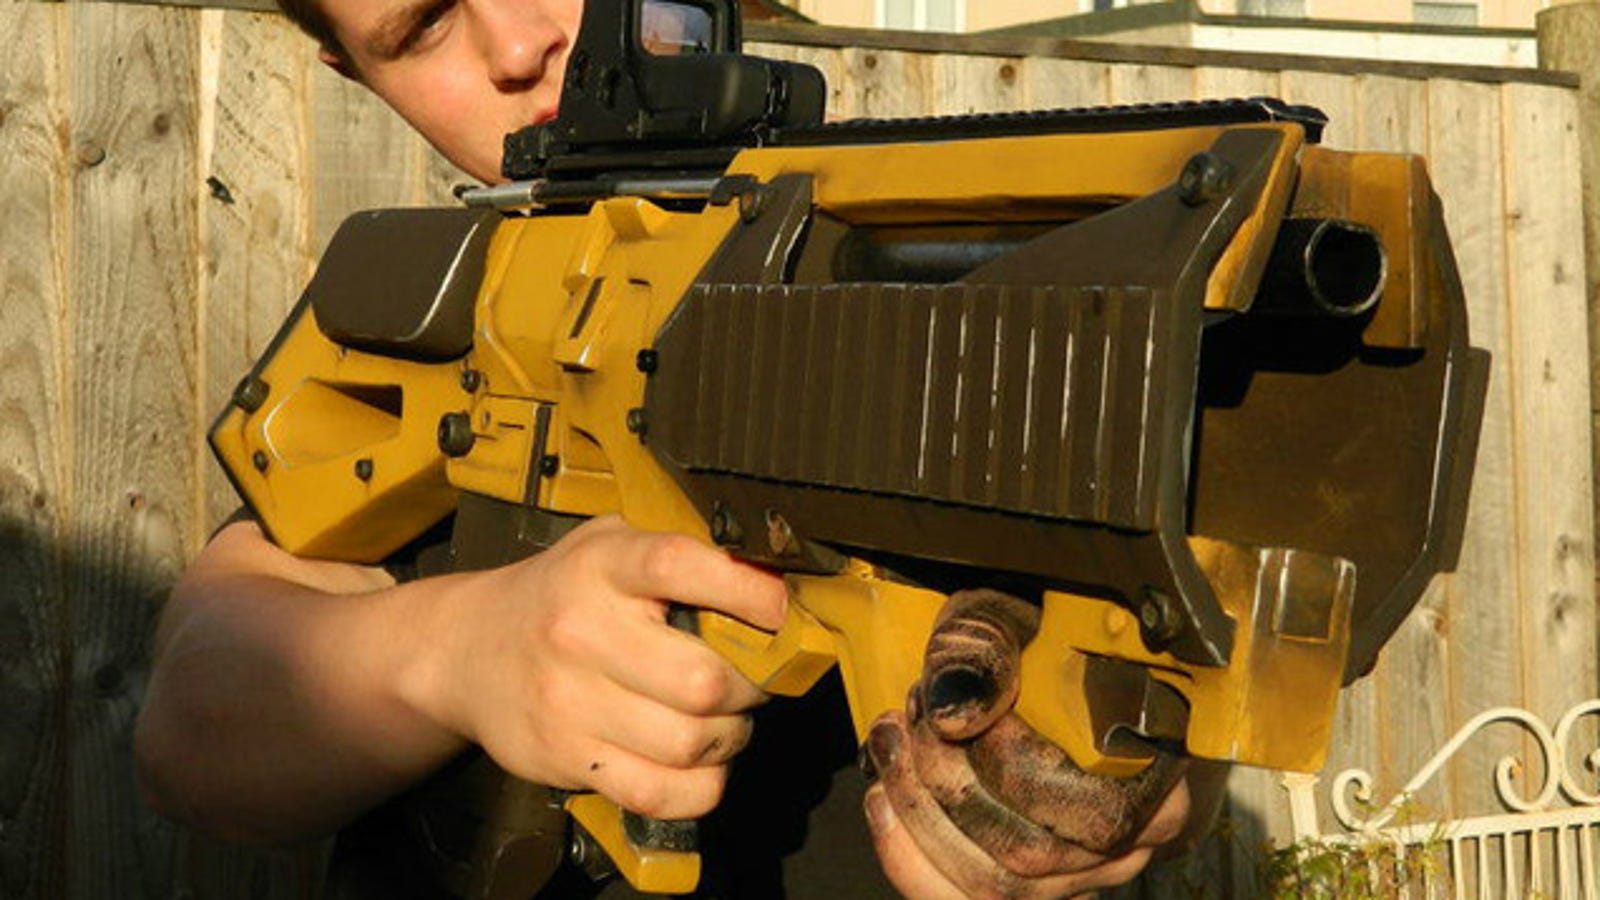 Borderlands Guns Look So Badass In Real-Life